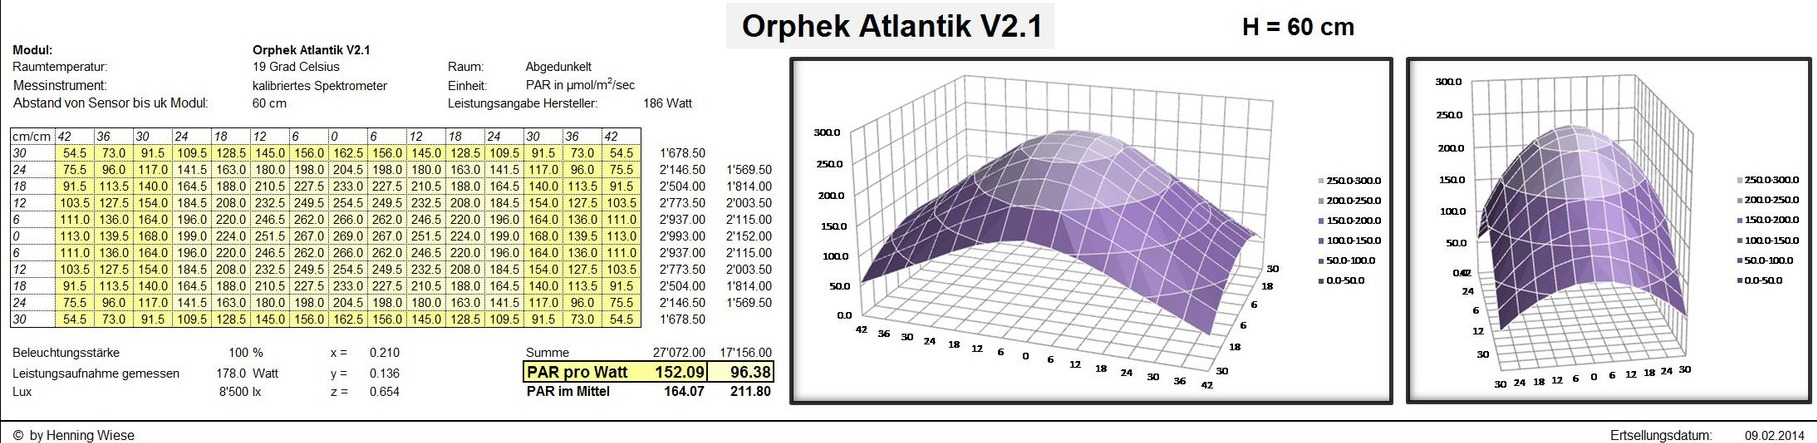 Orphek Atlantik V2.1 LED-armatur-PAR MAP-PAR per watt